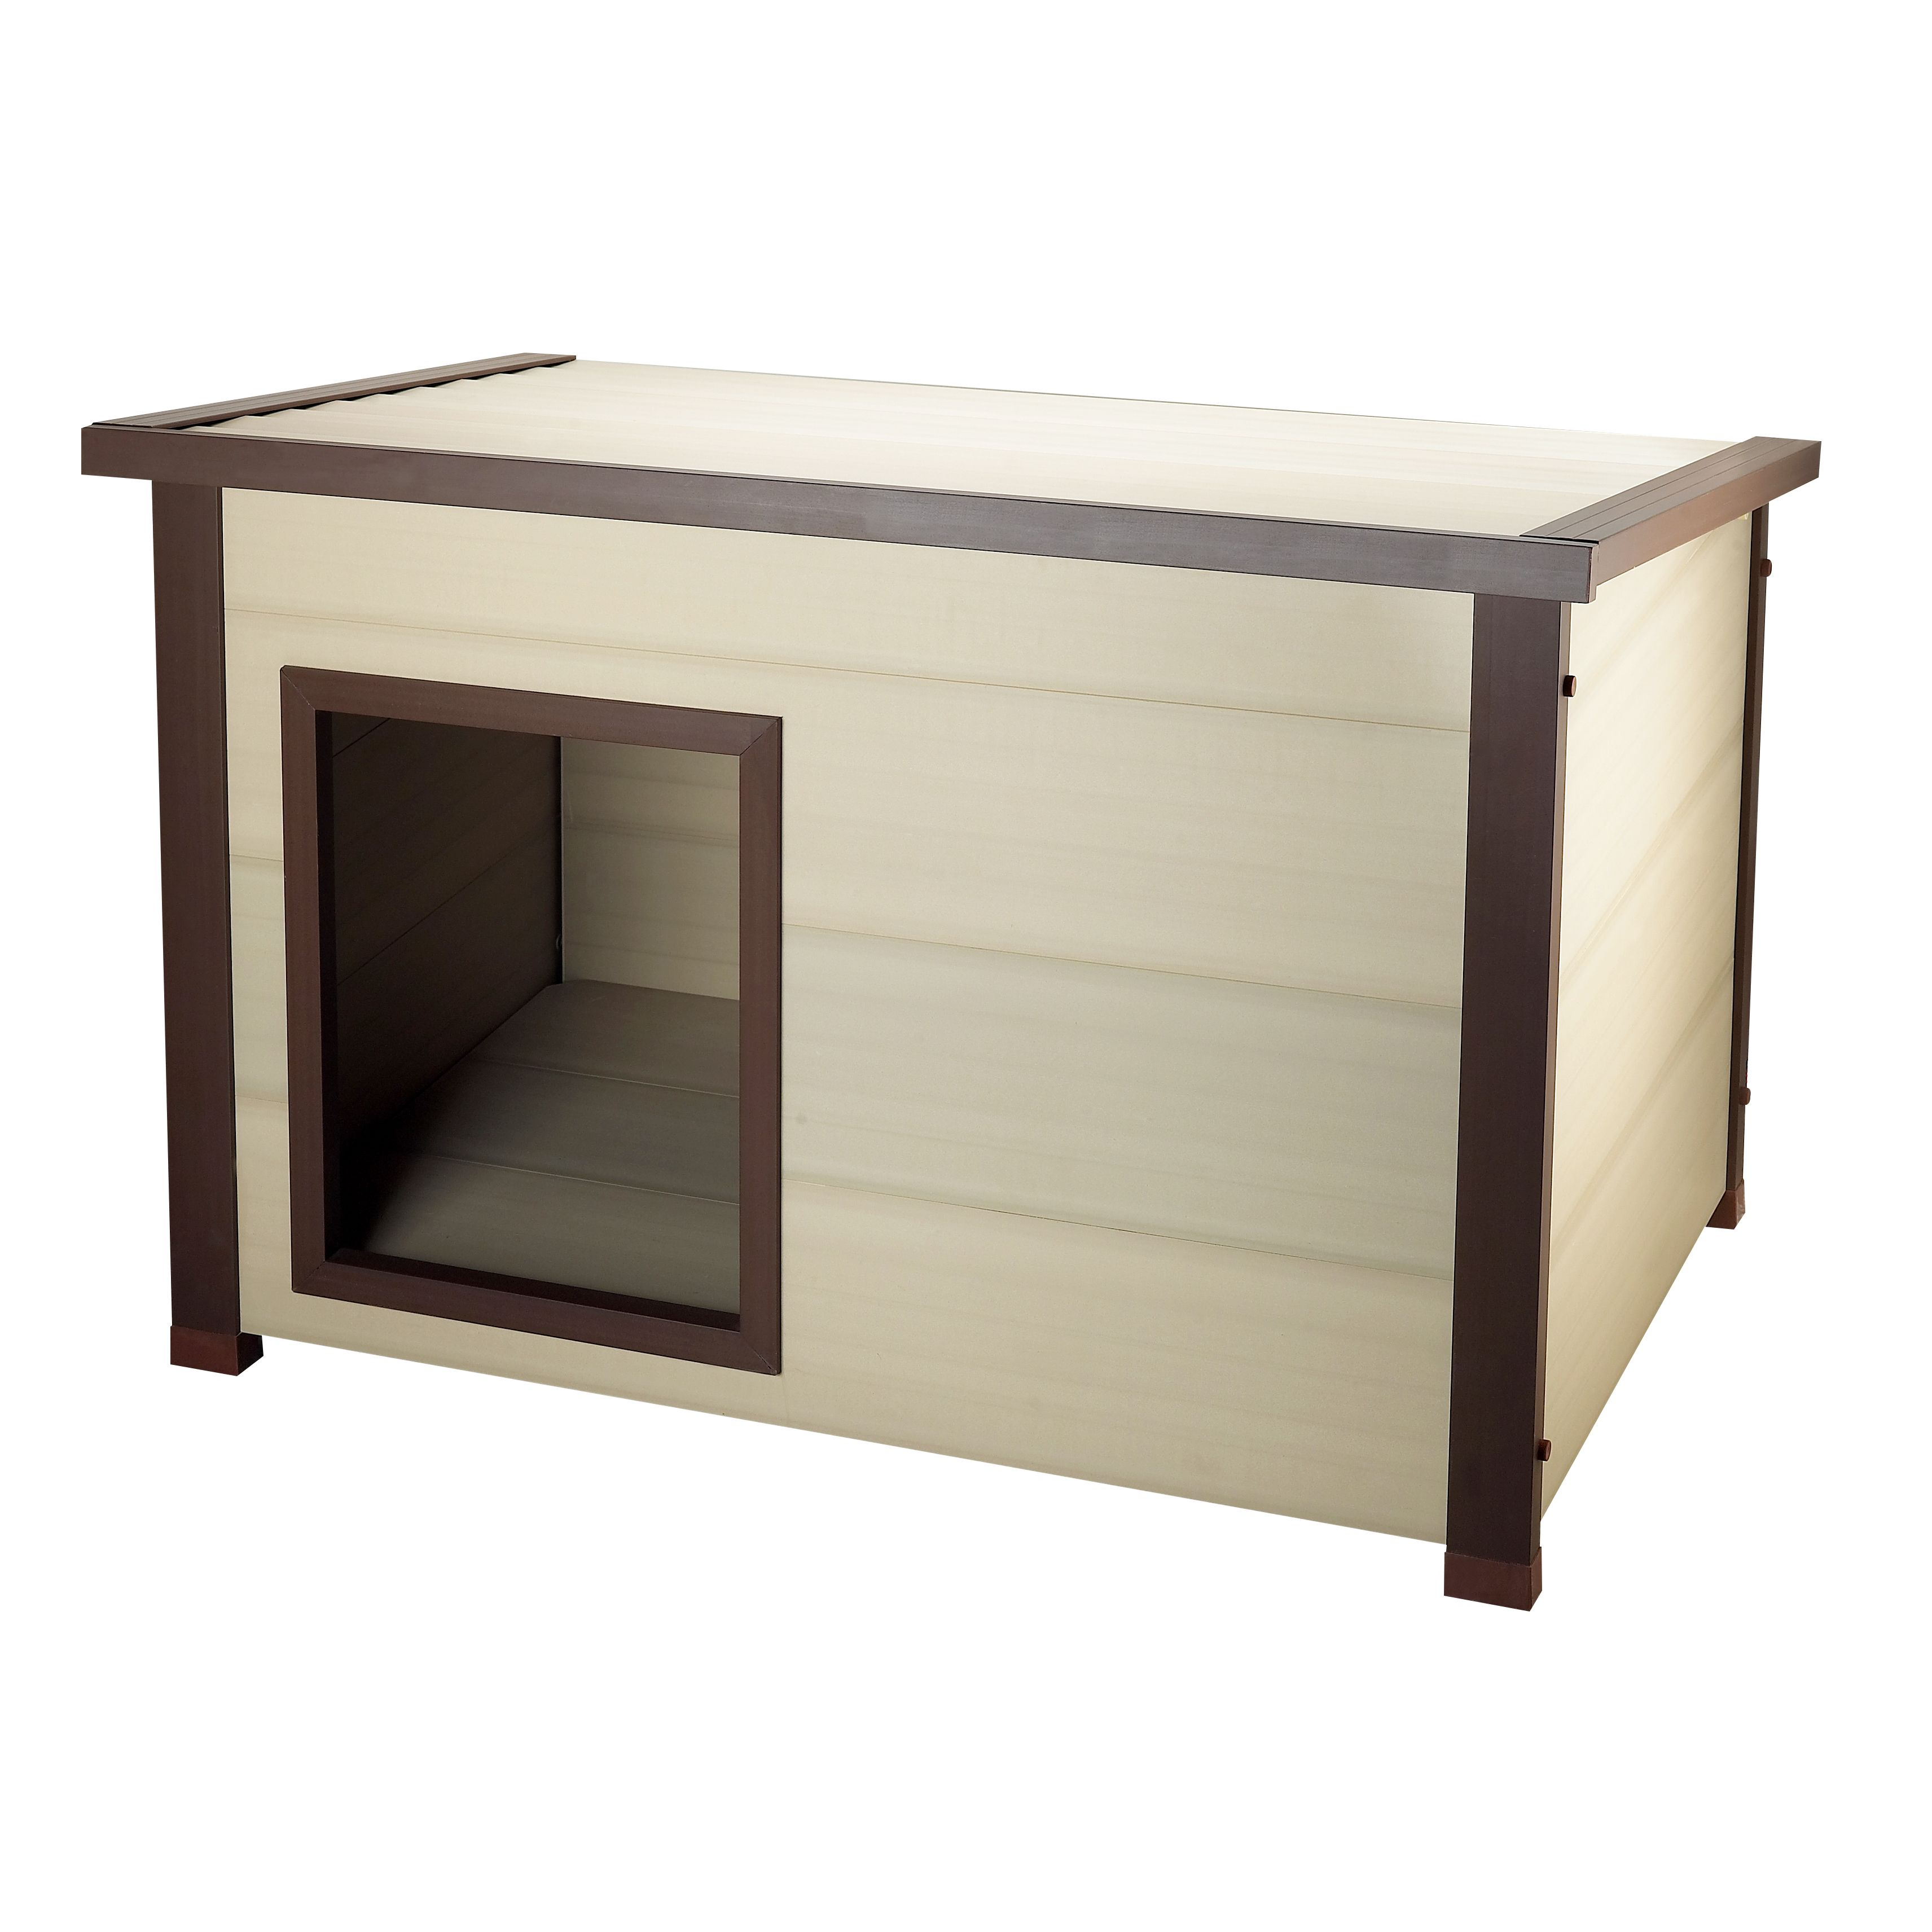 The insulated ThermoCore Canine Cottage will provide a cozy spot for your pet to shield them from the elements. This step-in design dog house is elevated from the ground and is built with a flow-through ventilation system.